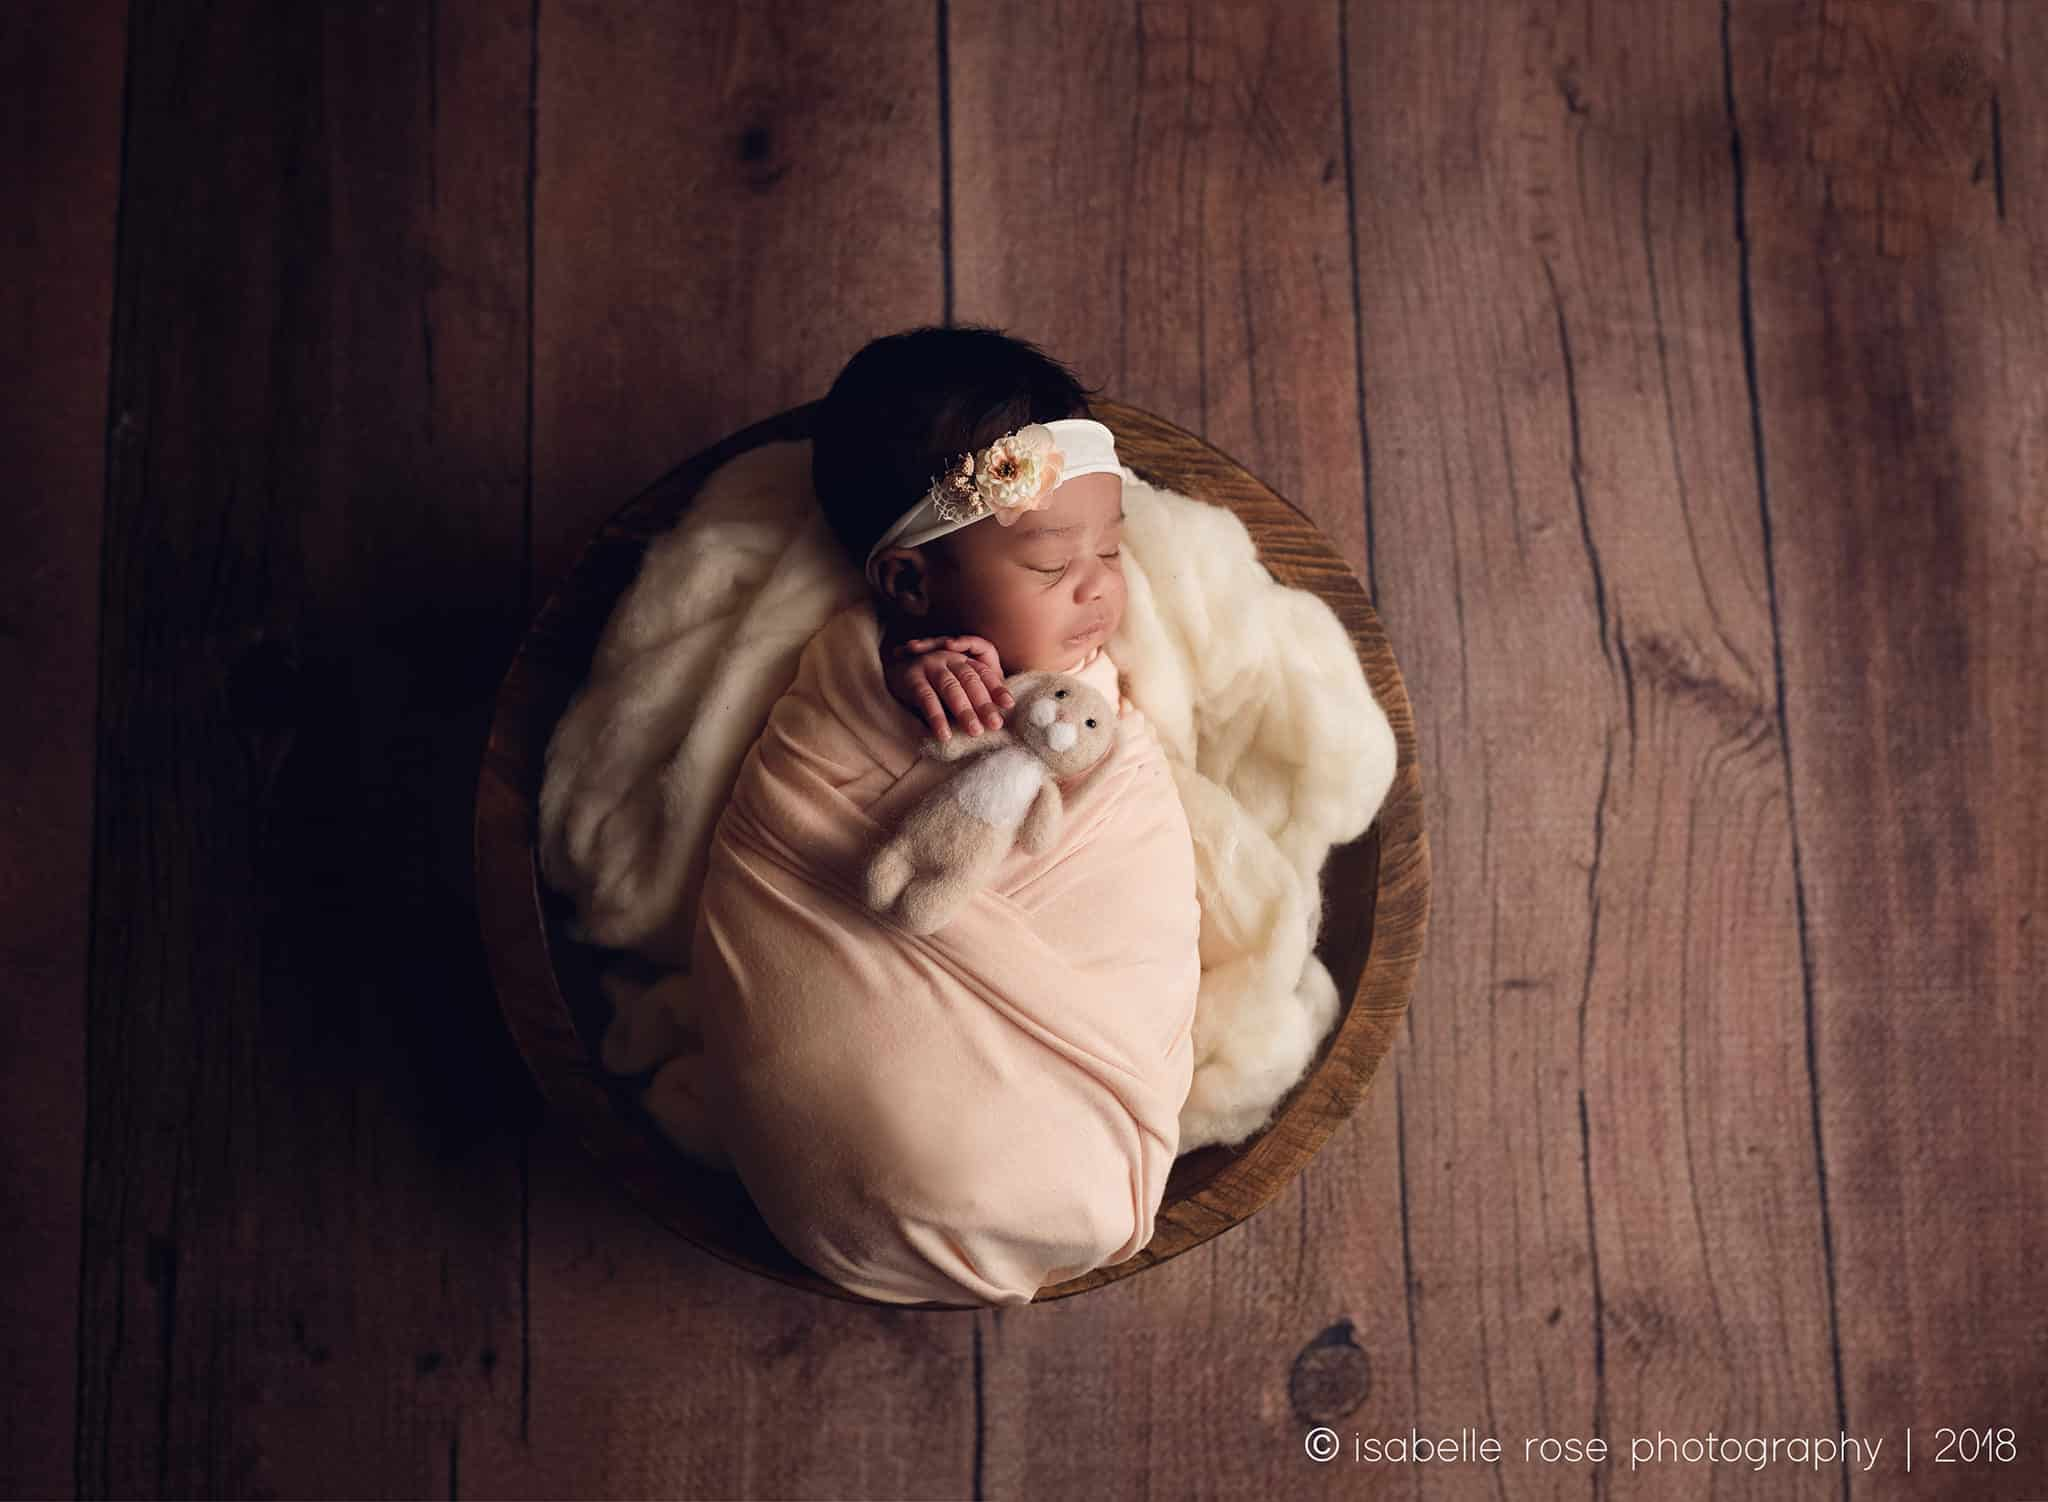 07172018 baton rouge la infant photographer wrapped baby in bowl with bunny